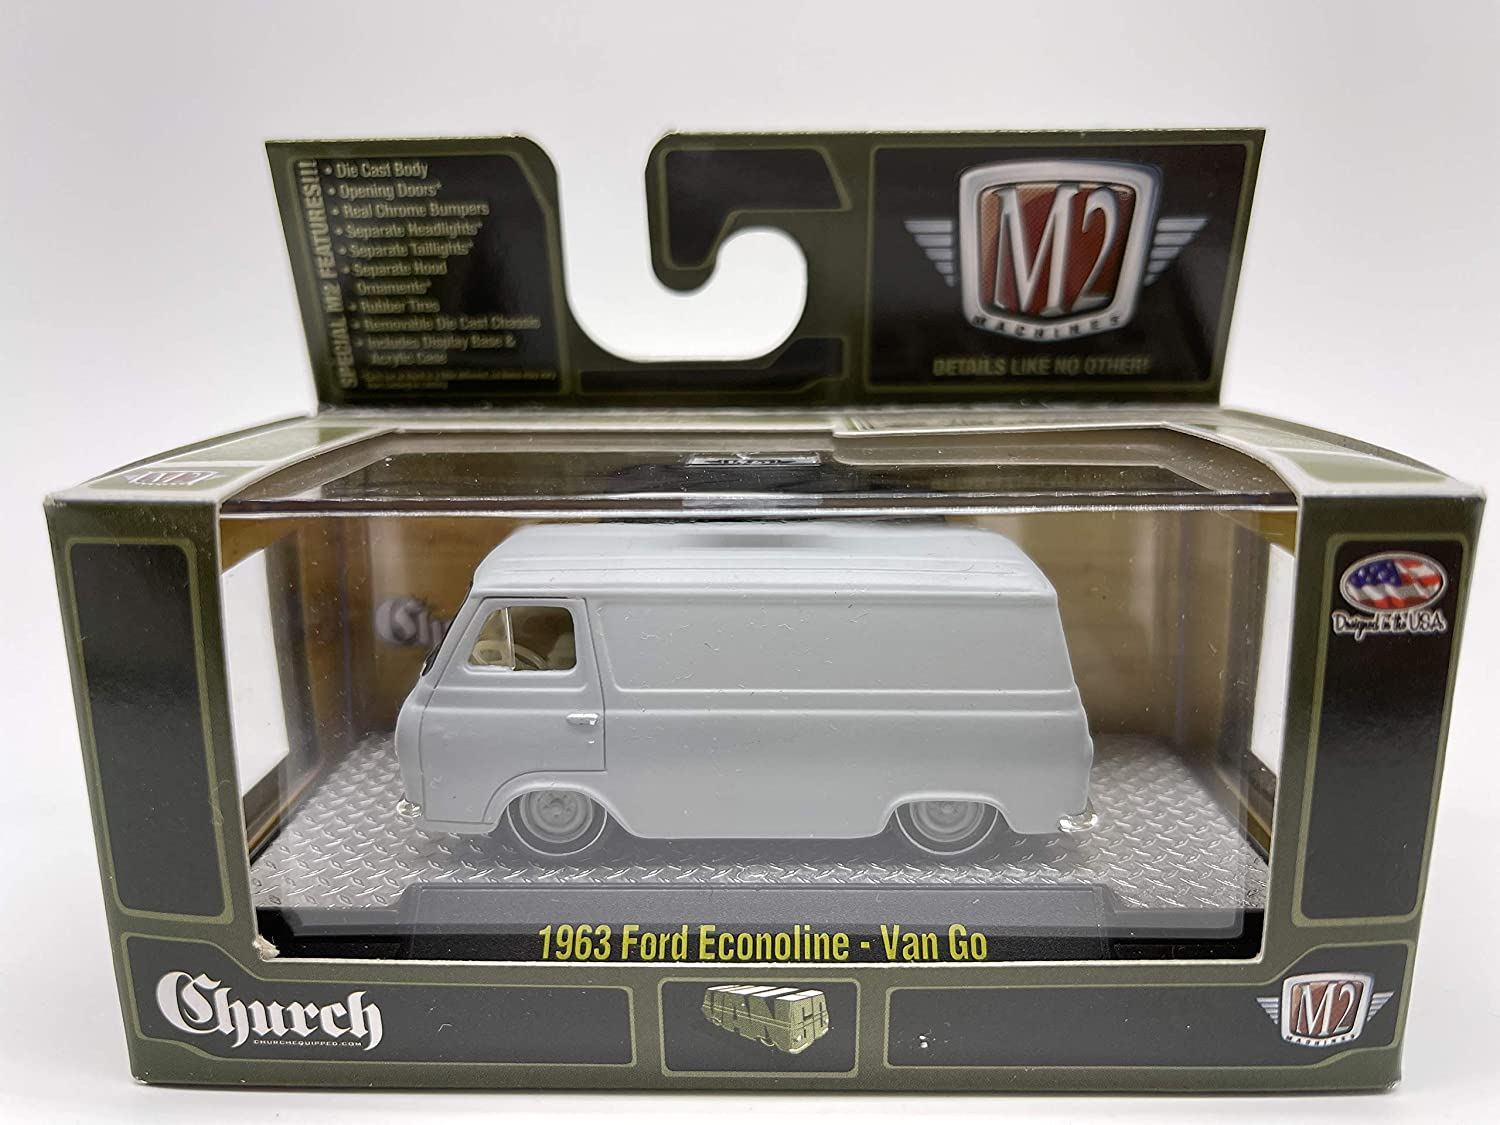 M2 Machines by M2 Collectible Church 1963 Ford Econoline Van Go 1:64 Scale Gray Details Like NO Other!